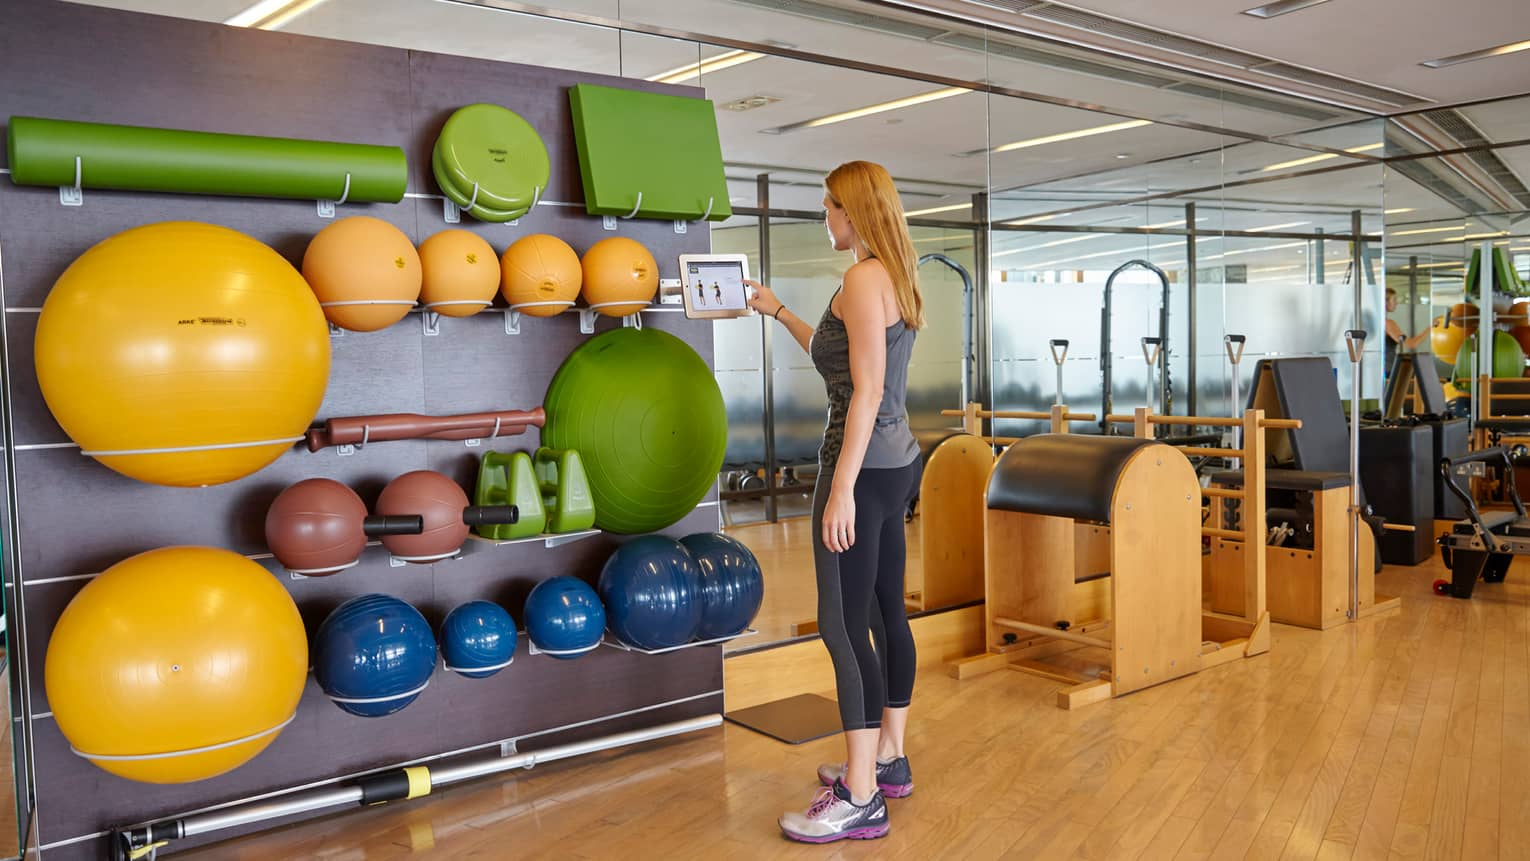 Fitness Centre, woman in workout gear taps taps touch screen by wall with colourful pilates balls, weights